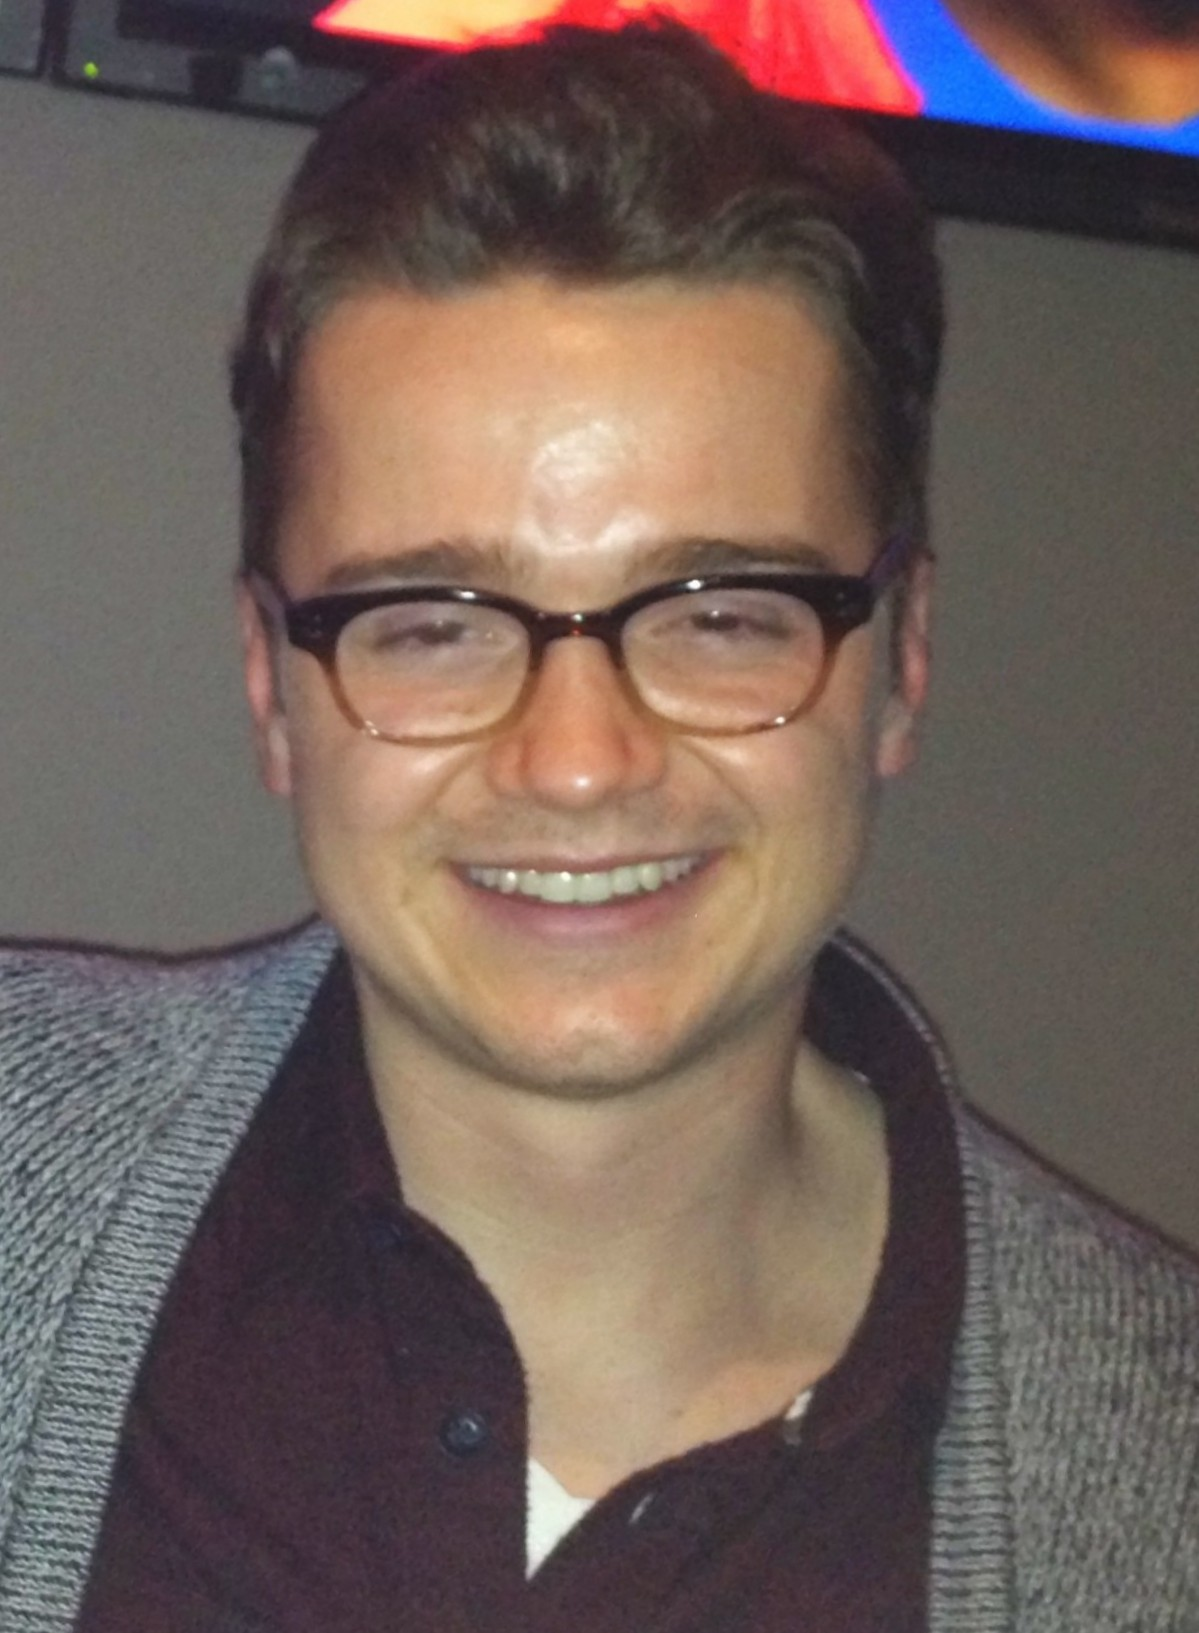 The 32-year old son of father (?) and mother(?) Dan Byrd in 2018 photo. Dan Byrd earned a  million dollar salary - leaving the net worth at 2 million in 2018